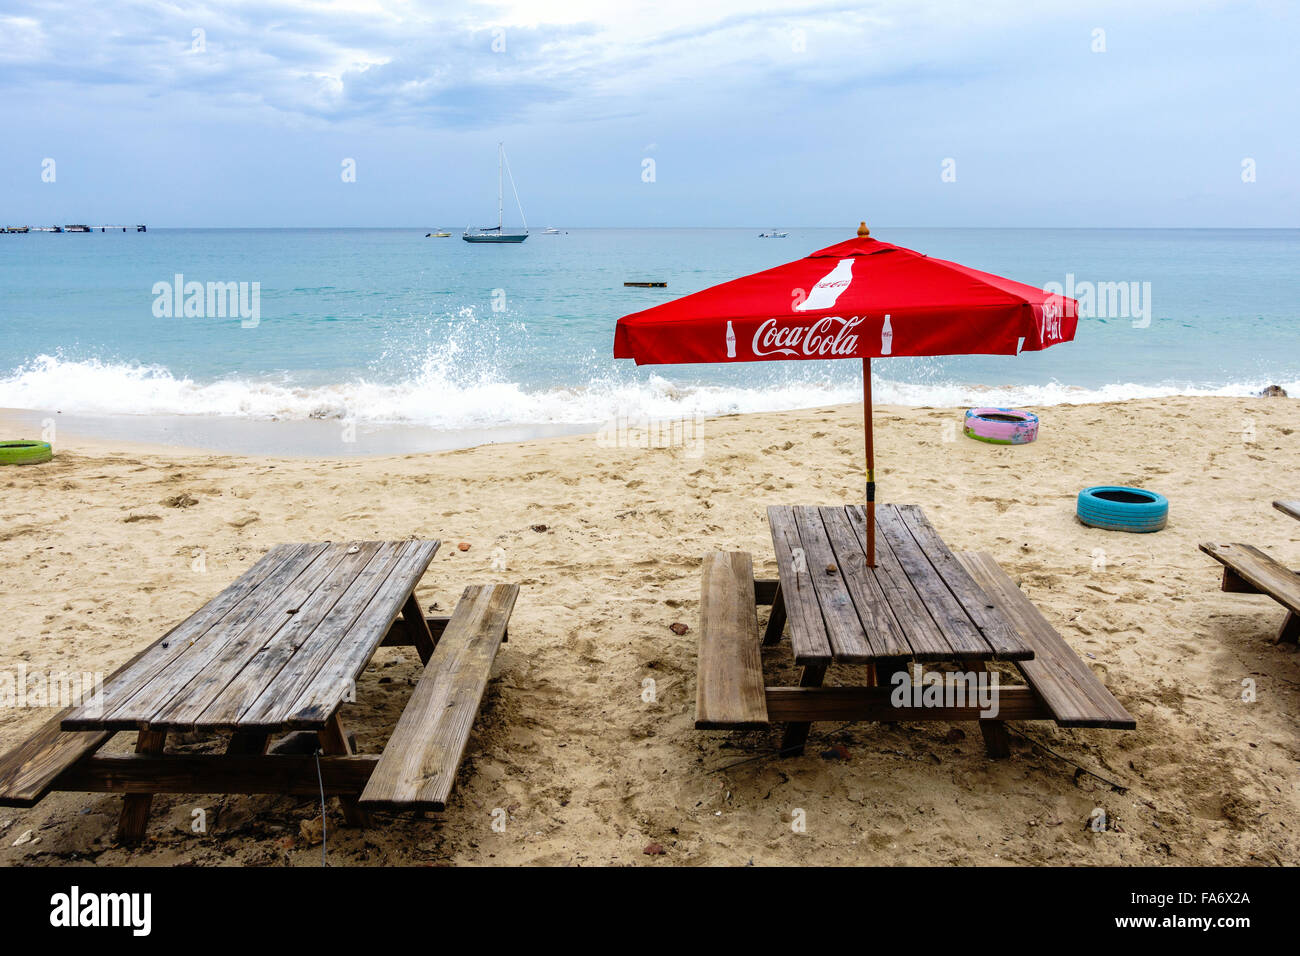 Weatherbeaten Wooden Picnic Tables With A Red CocaCola Umbrella On A  Caribbean Beach.   Stock